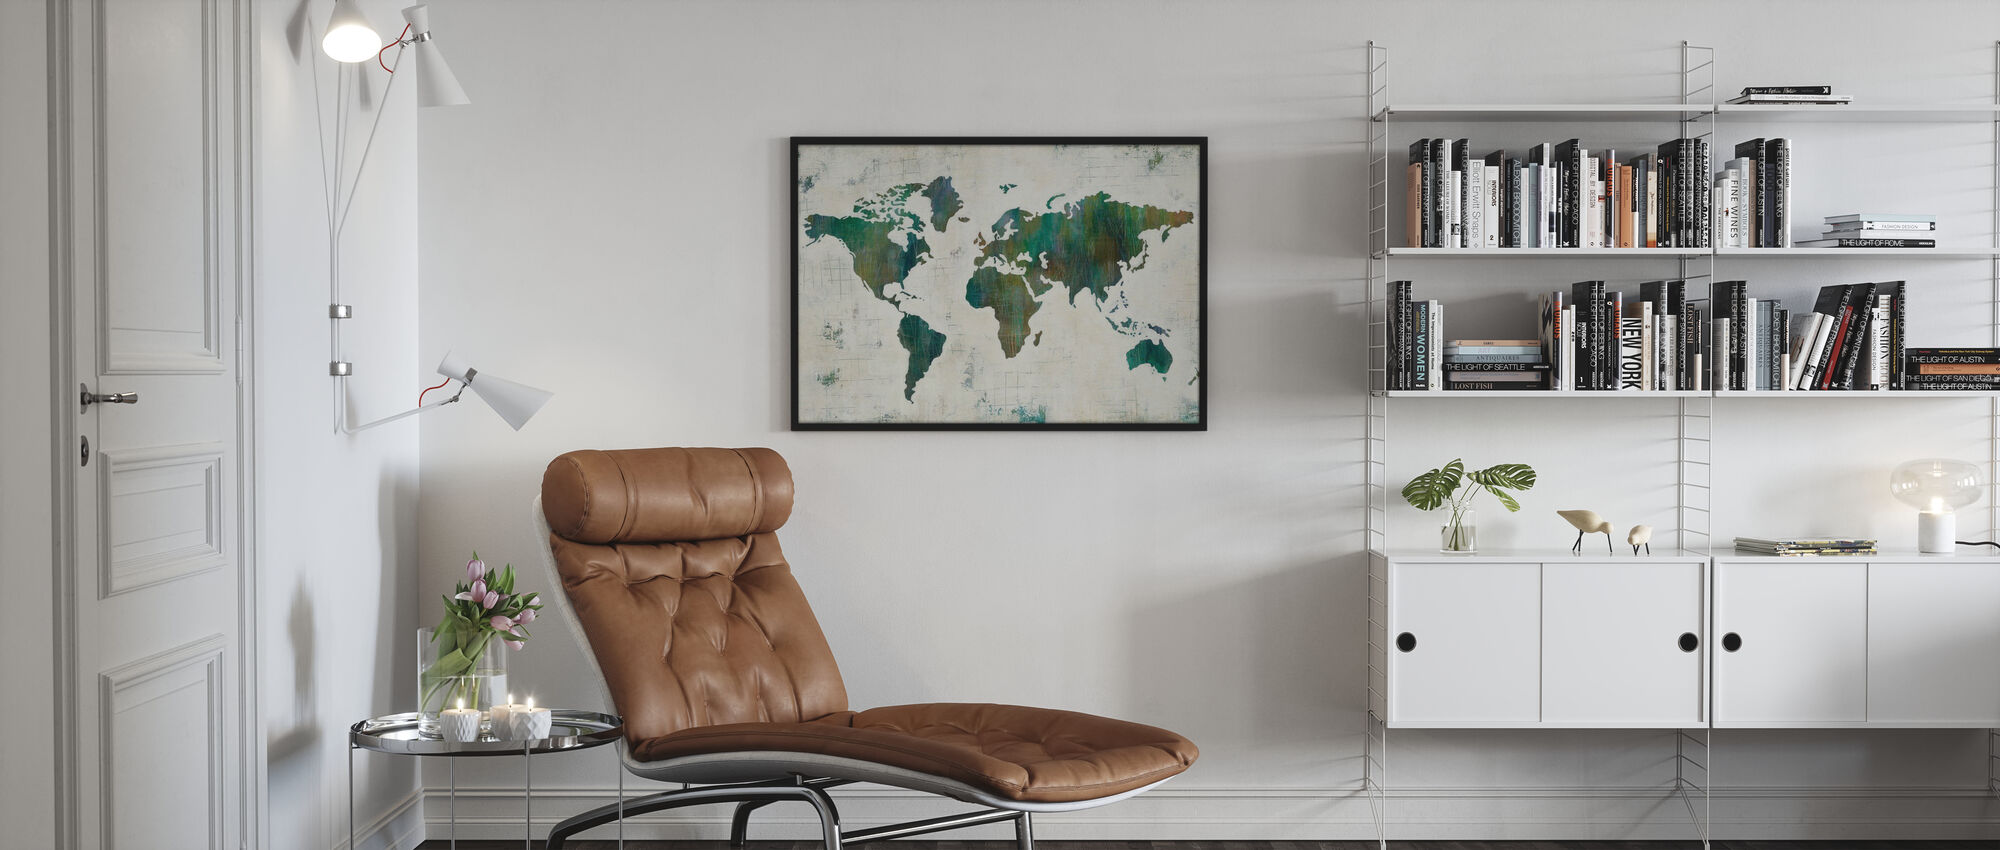 Discover the World - Poster - Living Room